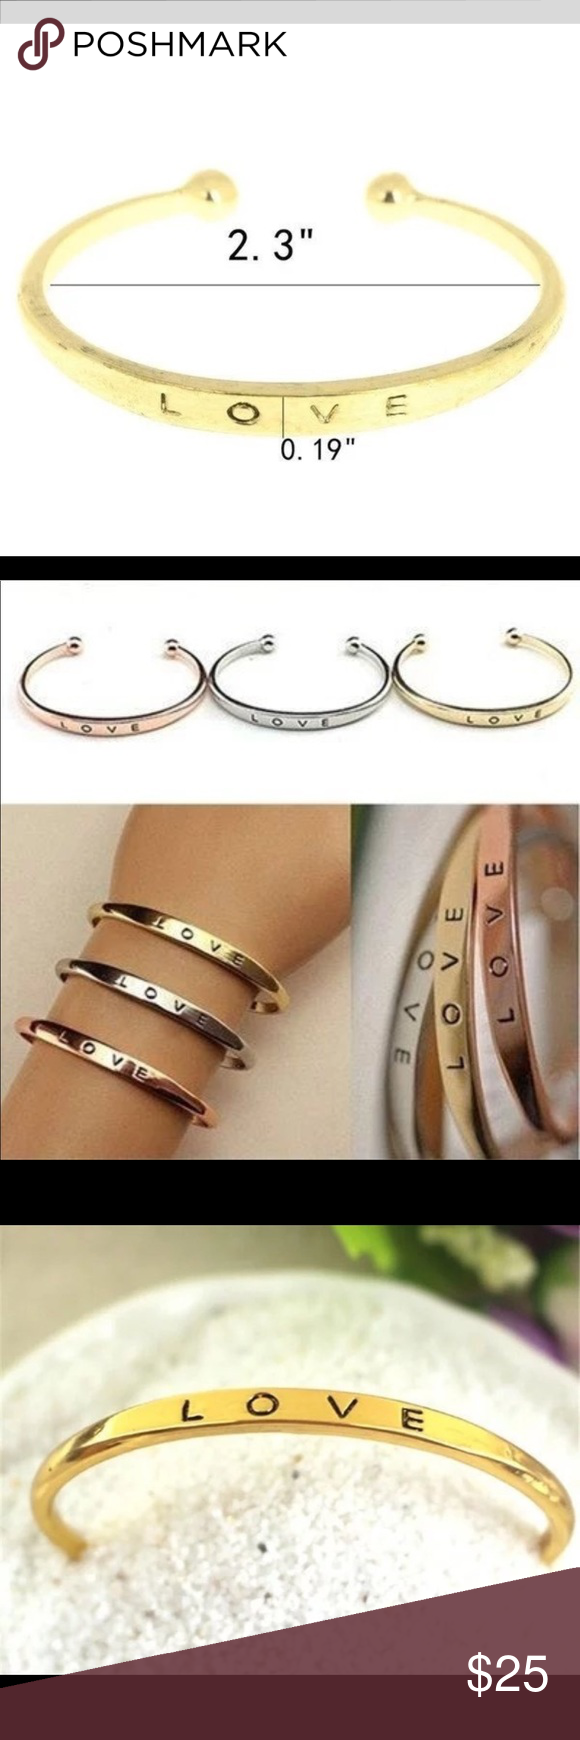 bracelets bracelet this forever gold life cartier closed bangles knot screw love surprising bangle